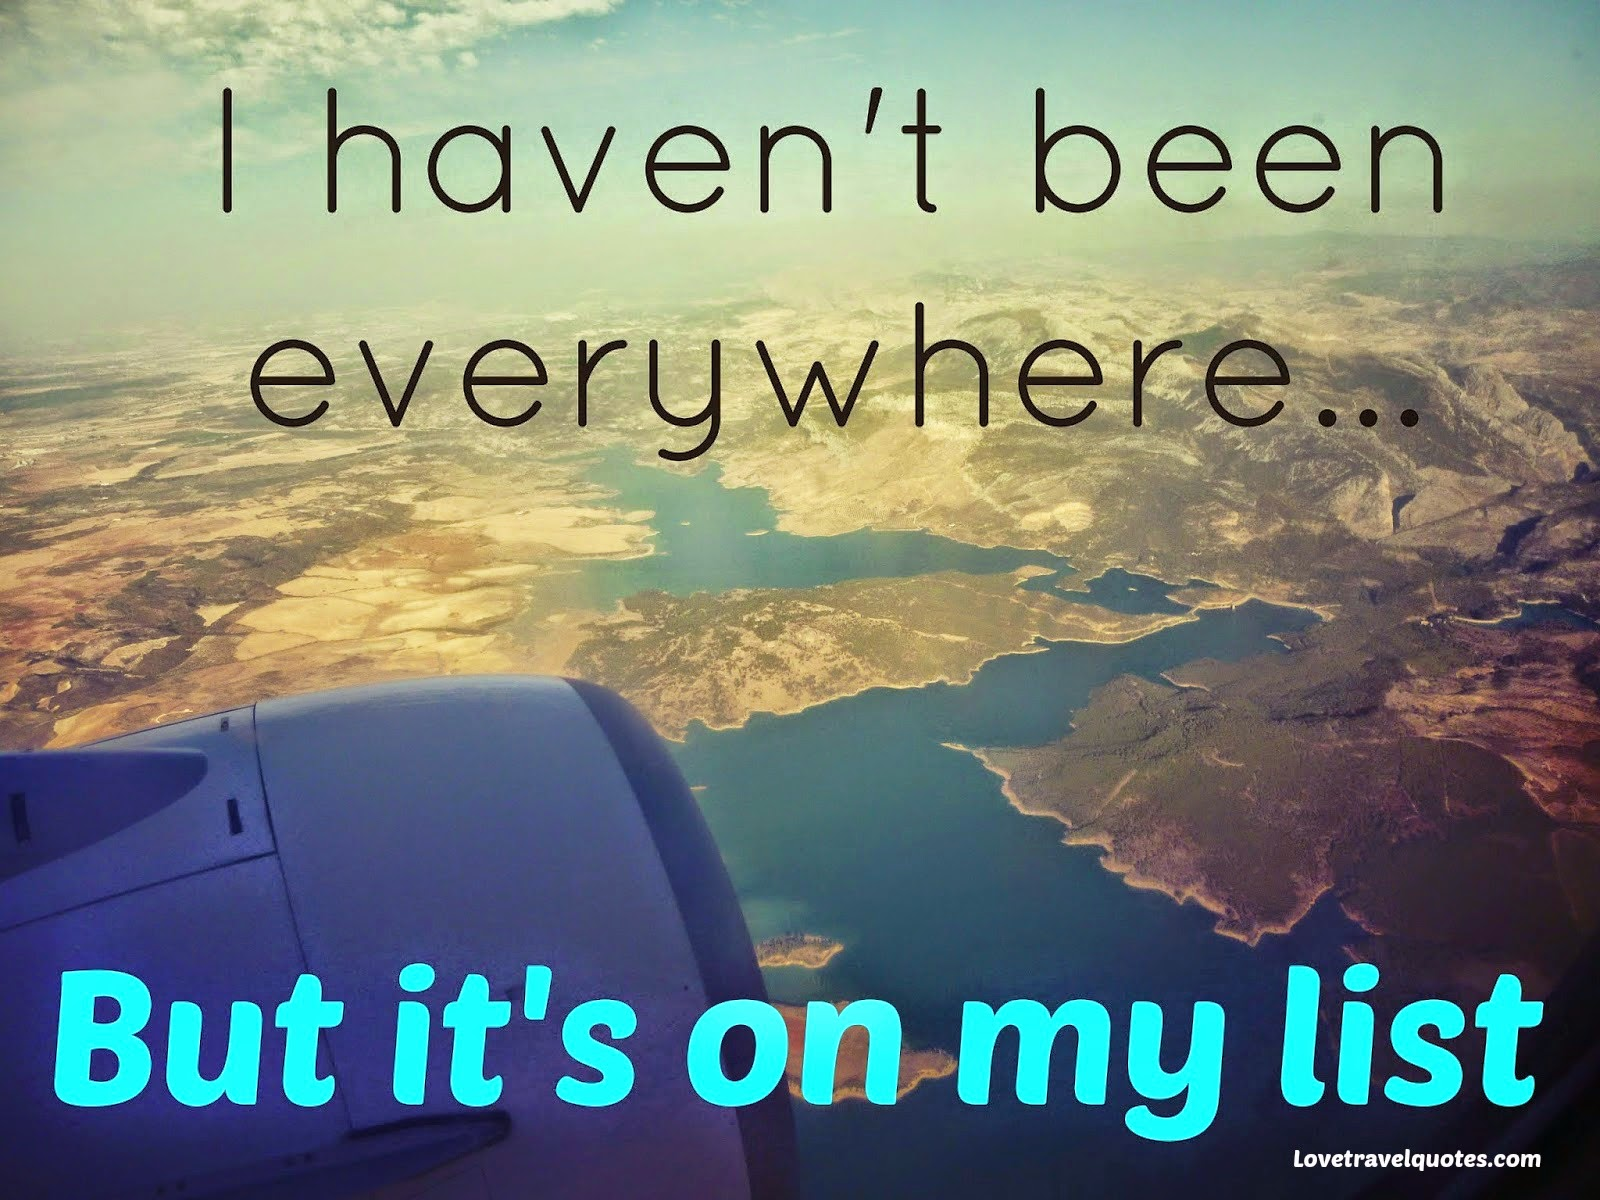 I haven't been everywhere but it's on my list